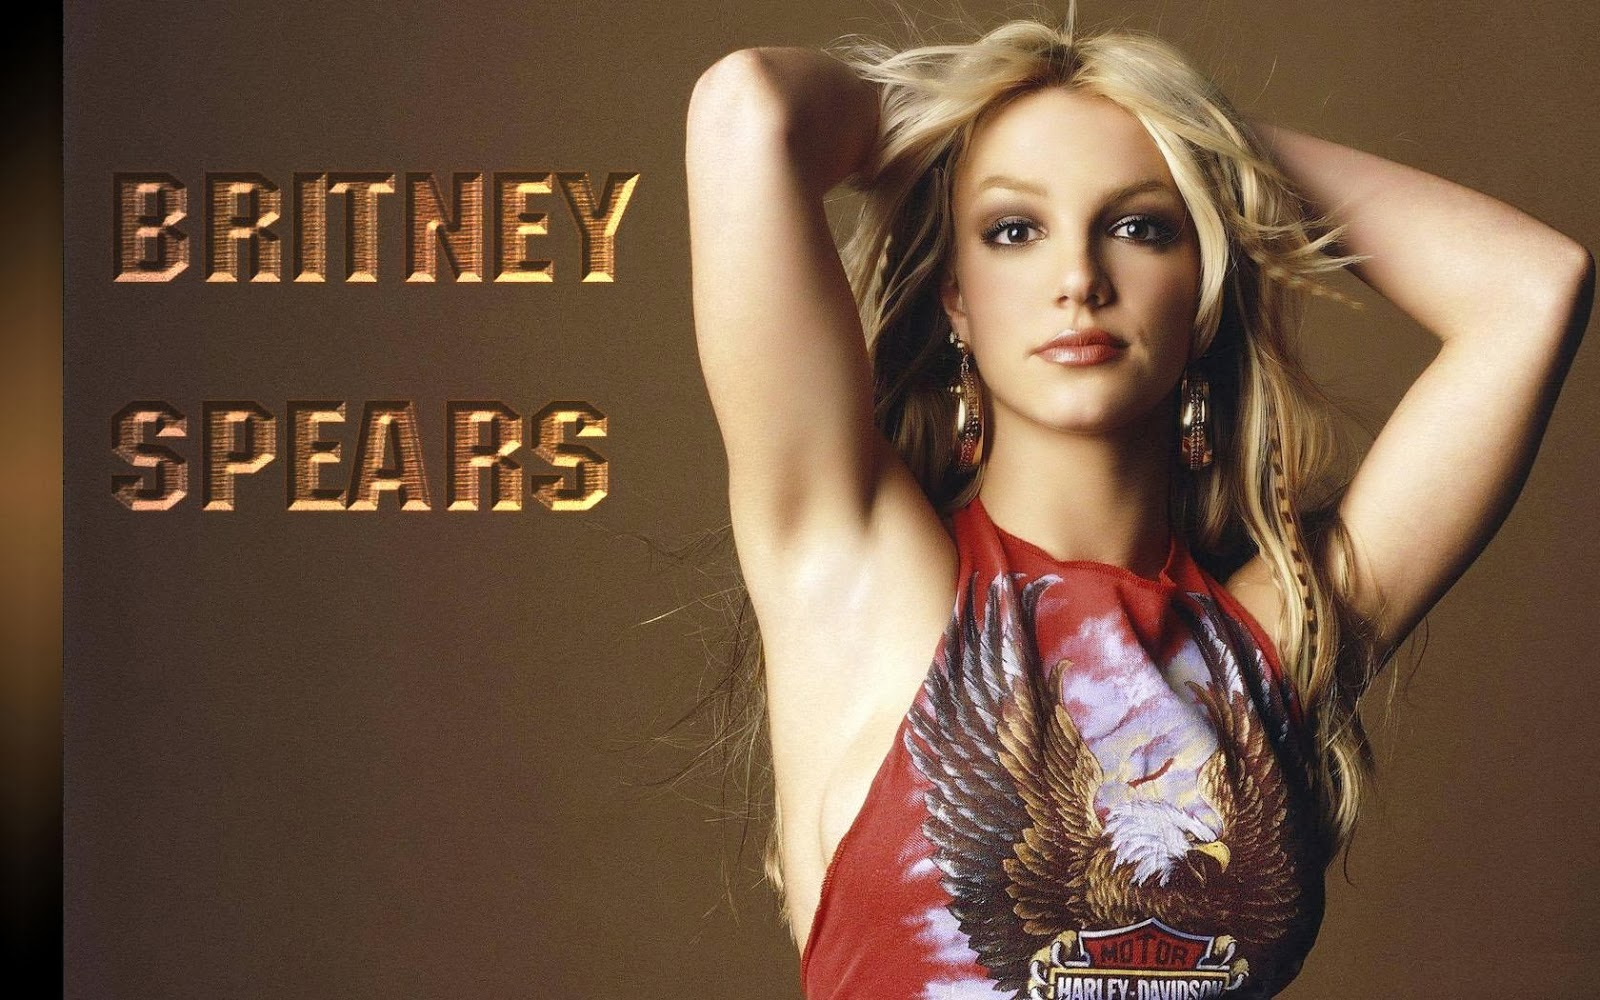 Britney+Spears+Hd+Wallpapers+Free+Download038